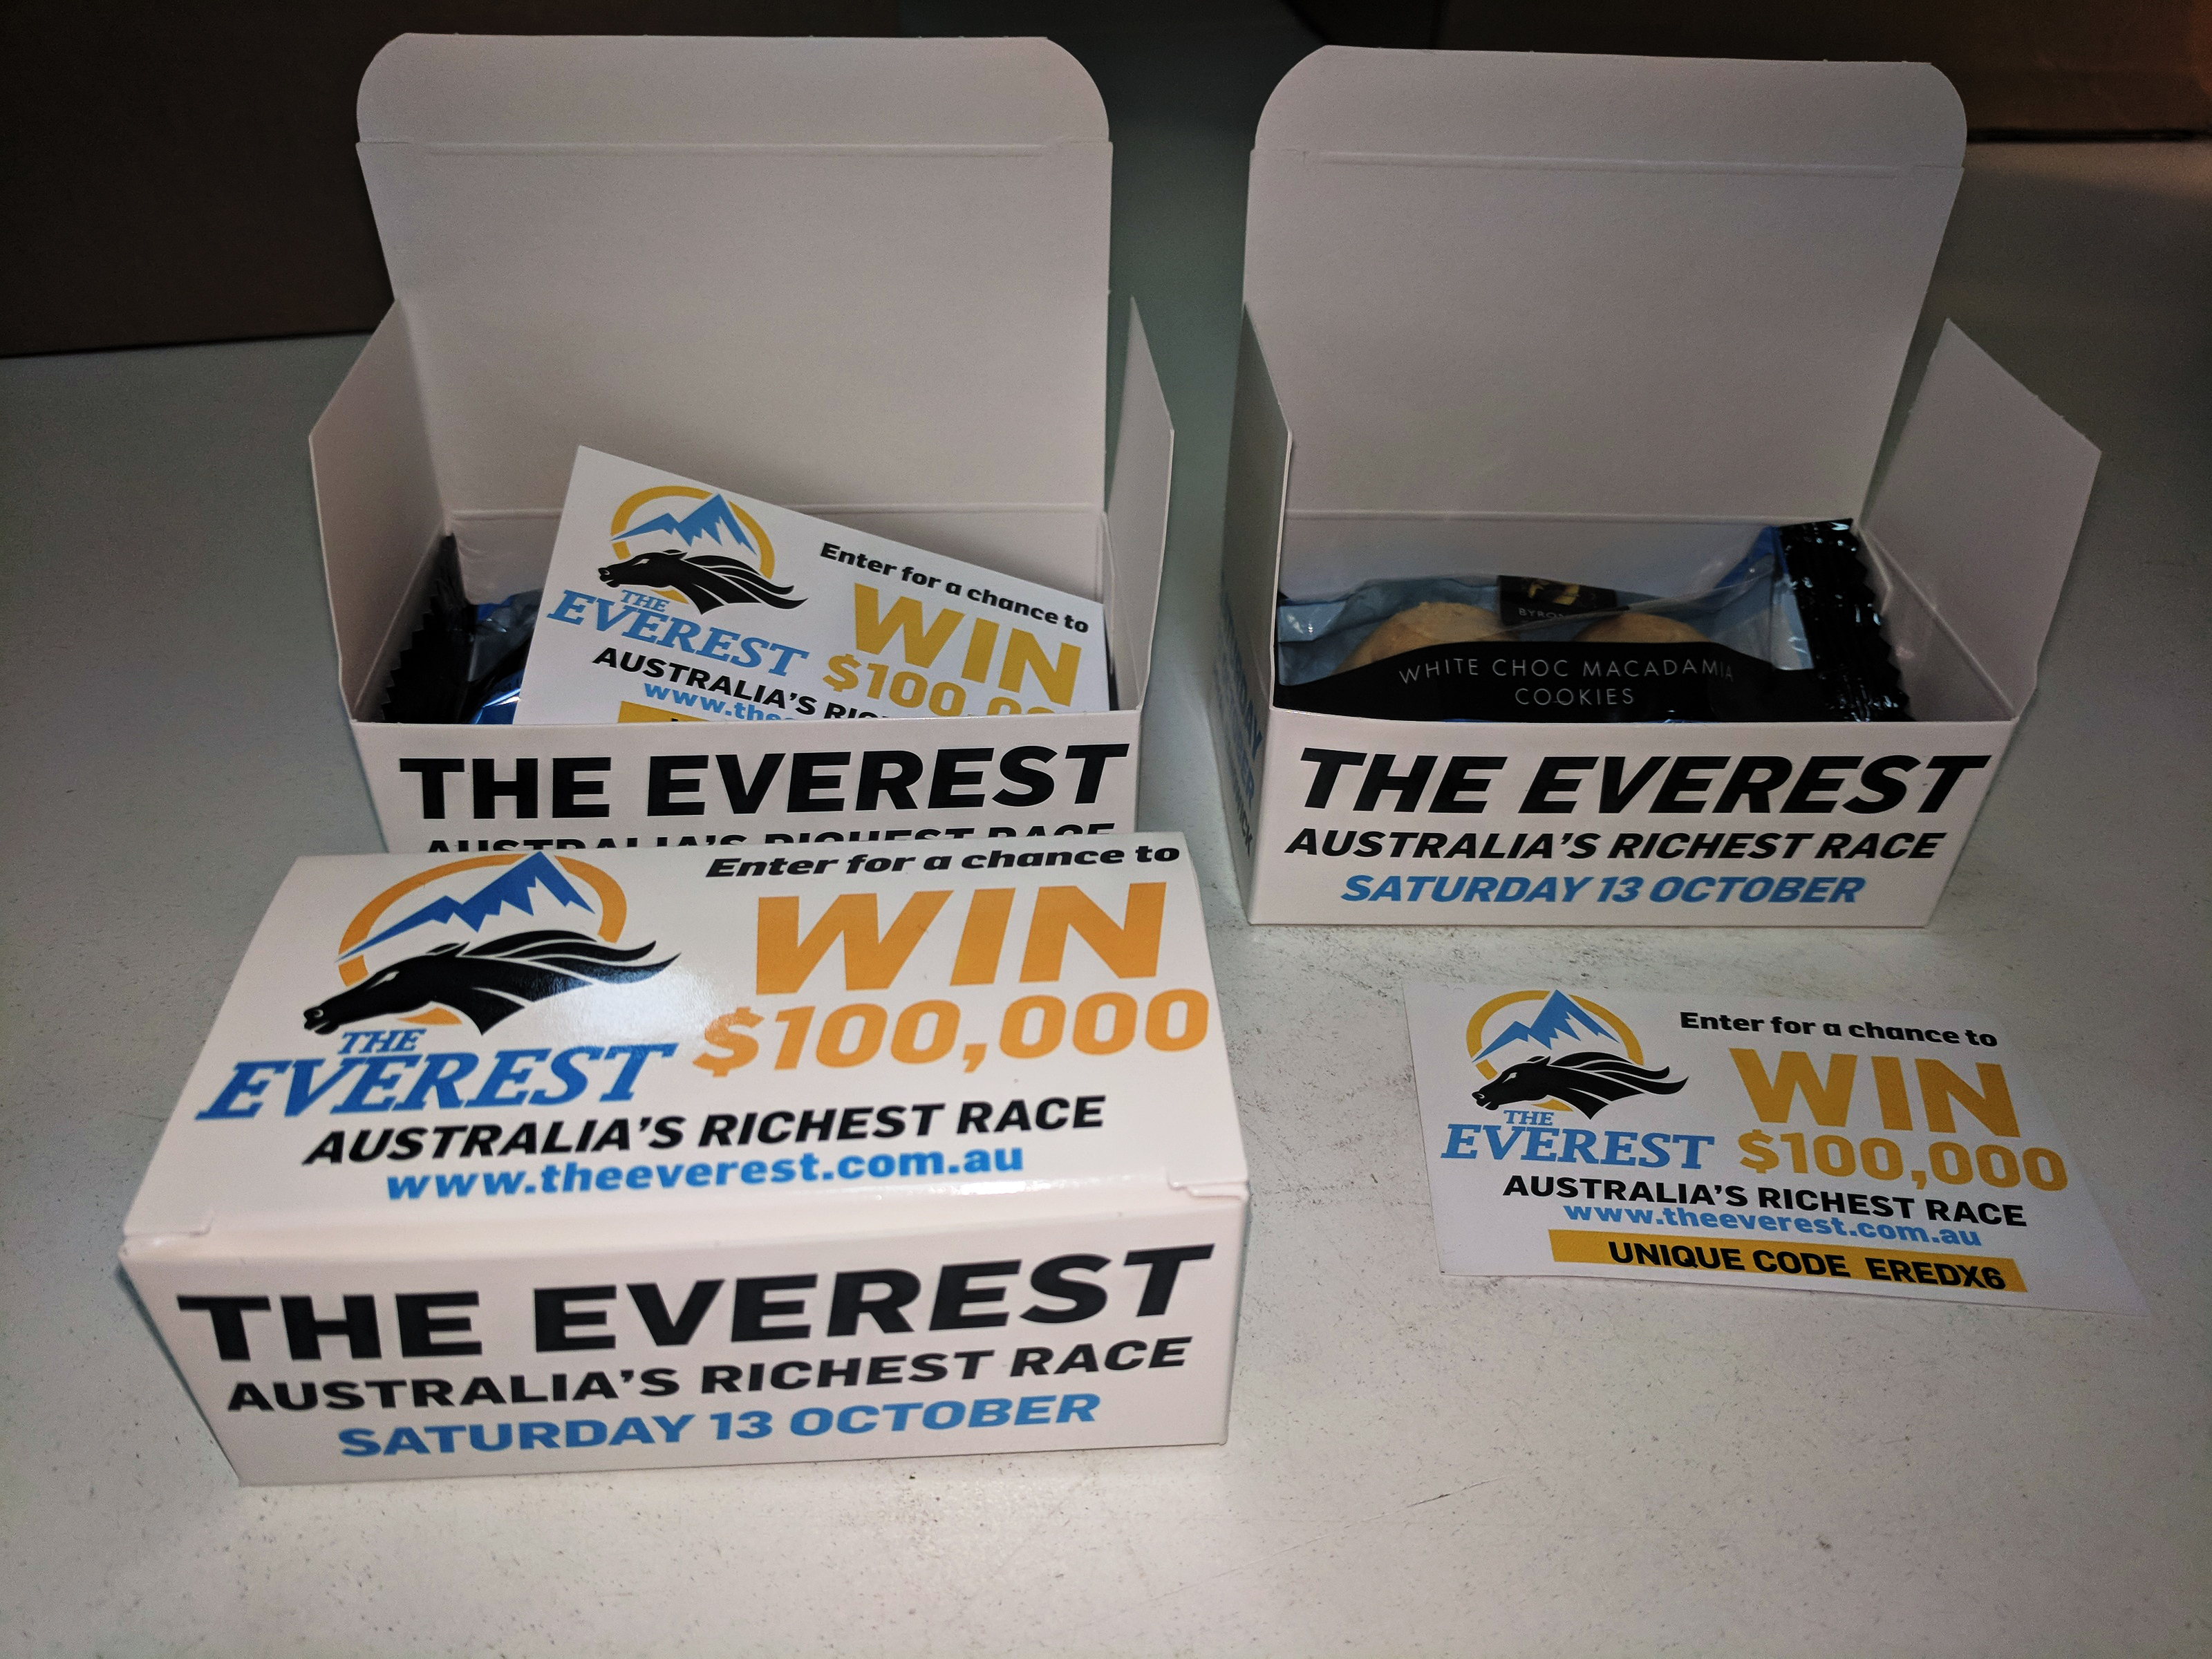 WIN $100,000 WITH THE EVEREST